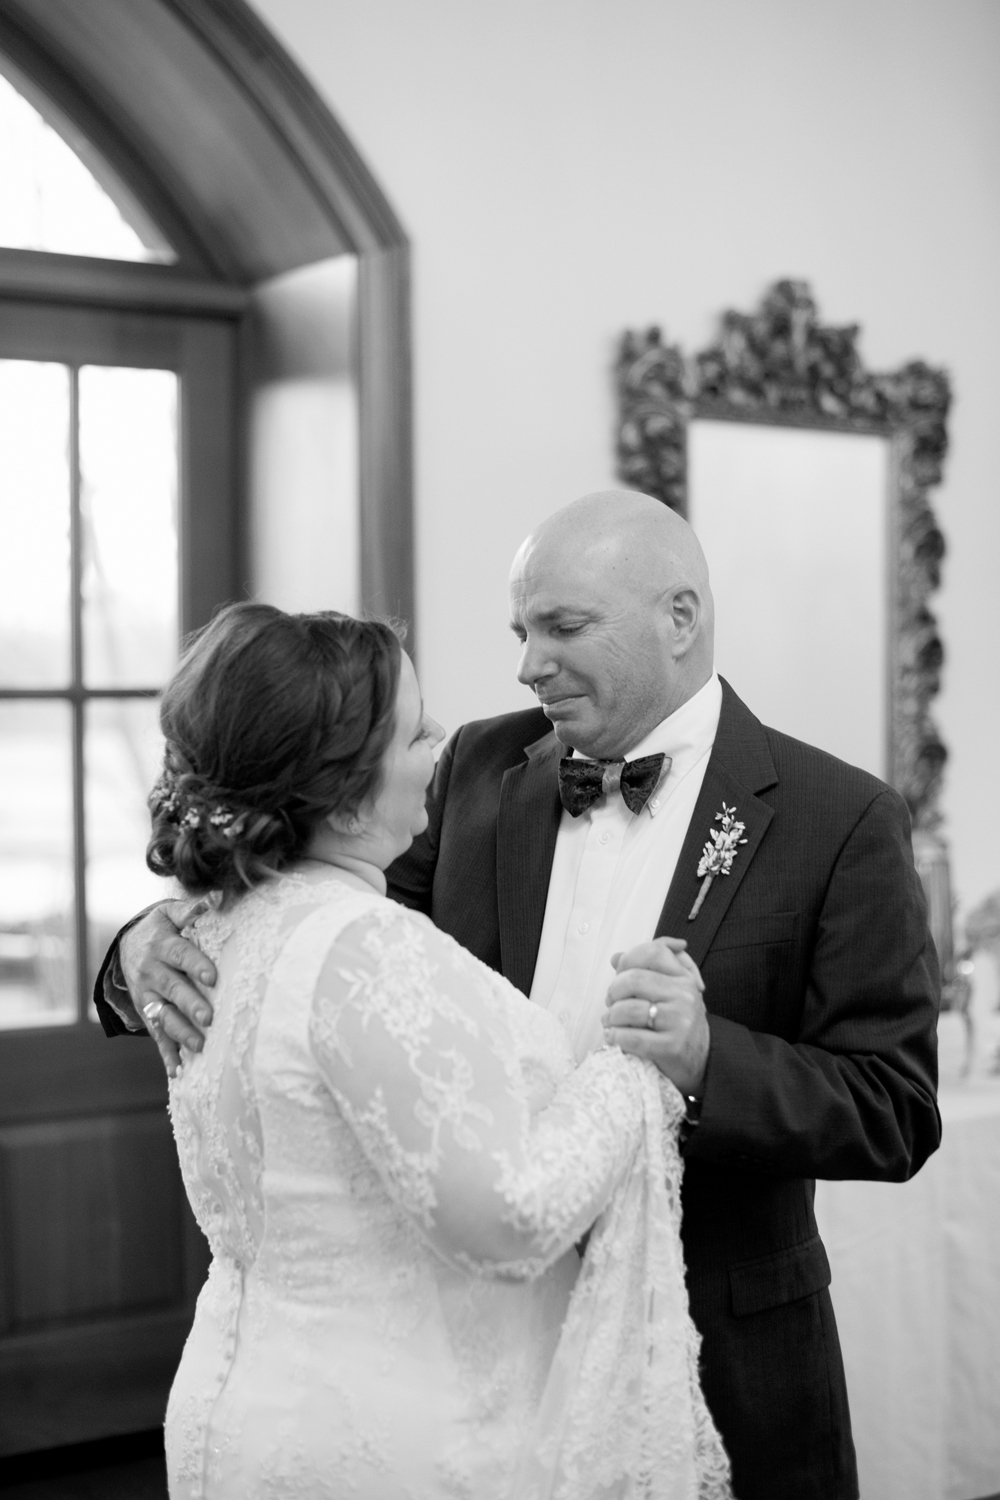 Bride's father cries during the first dance at her wedding